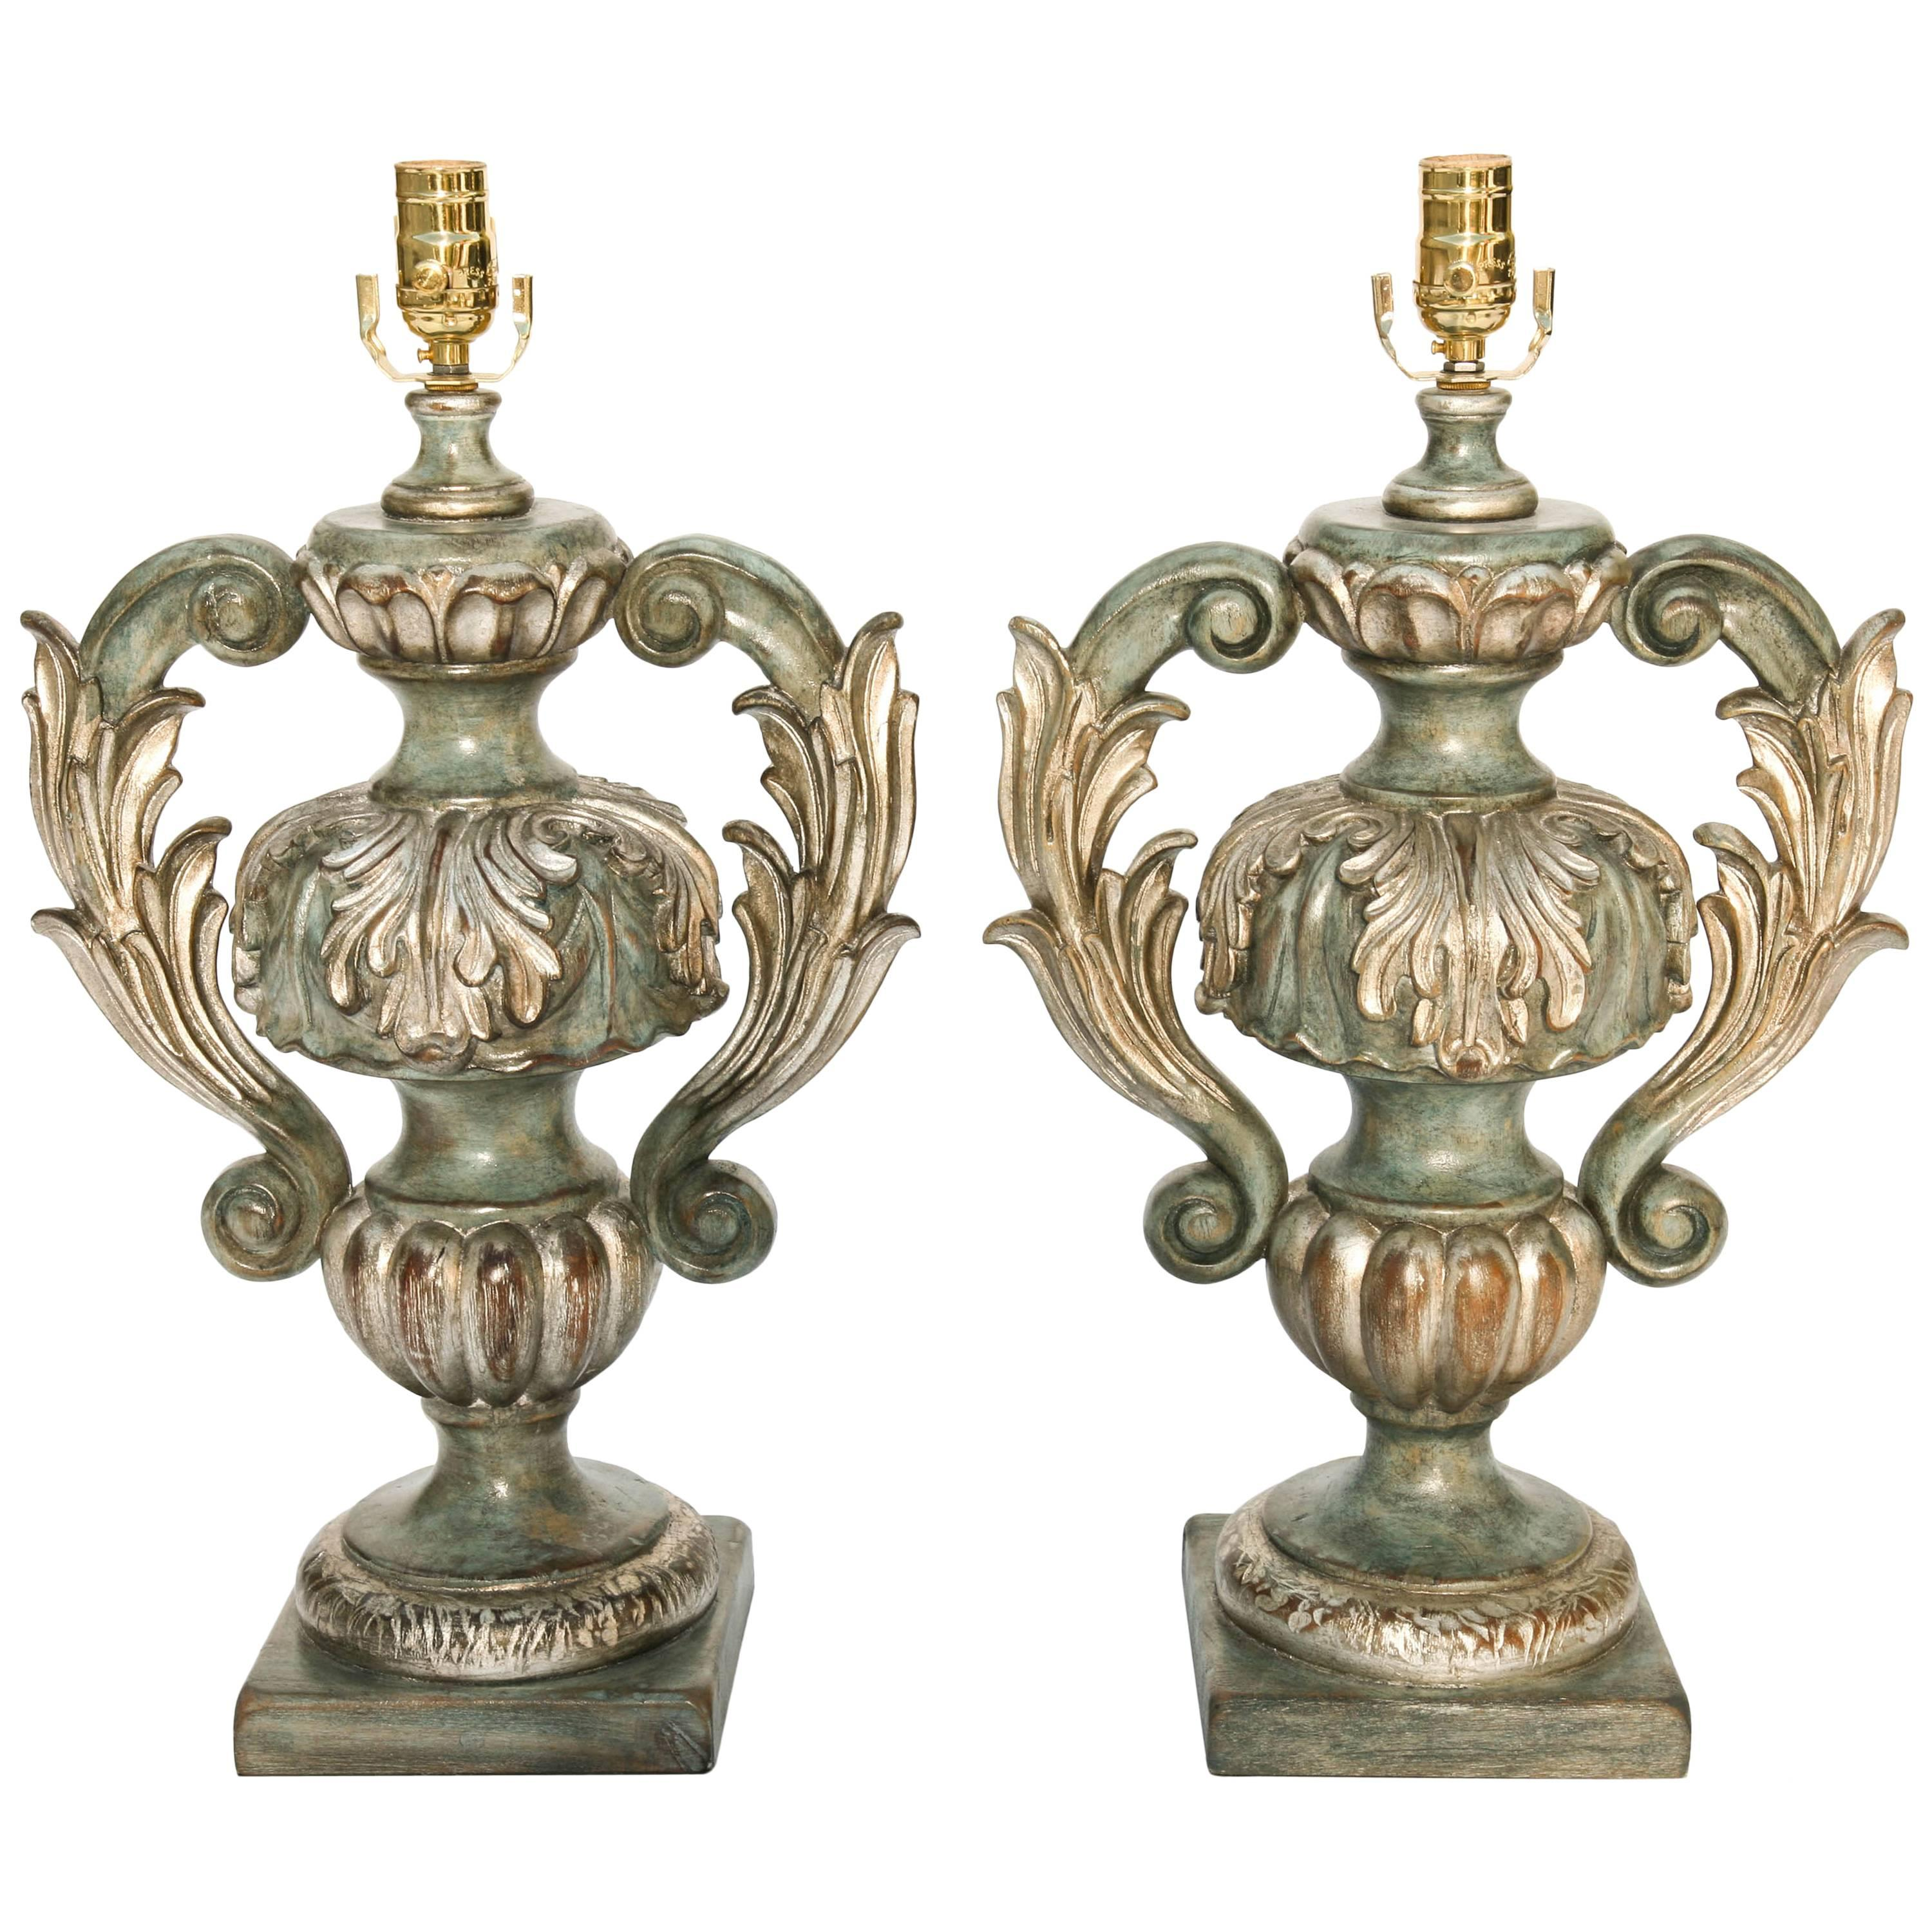 Pair of Italian Carved Wood Urn Lamps